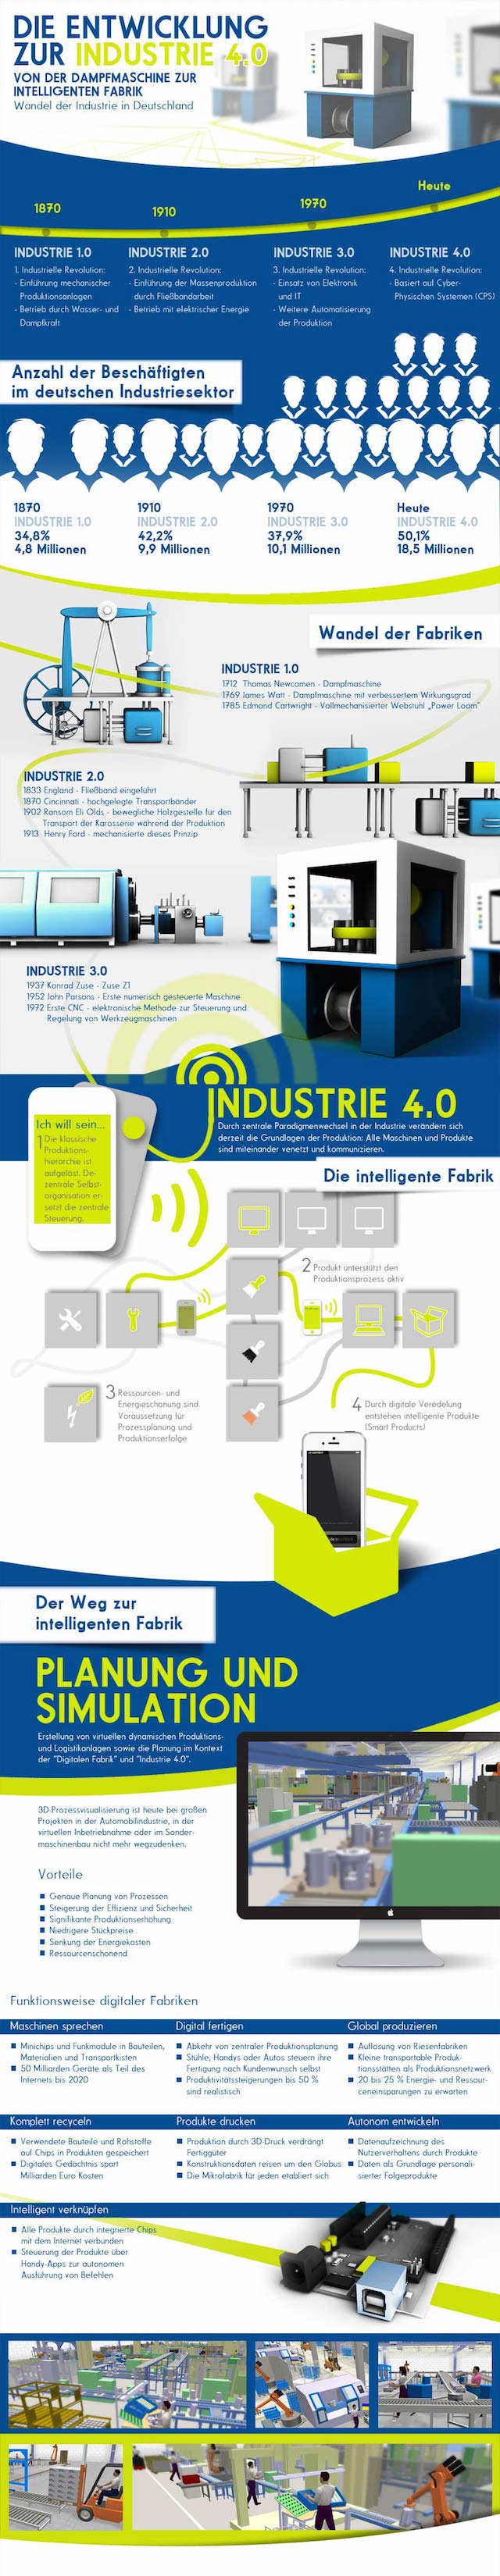 Industire 4.0 Infografik, Arbeiten 4.0, New Work, Digital Working